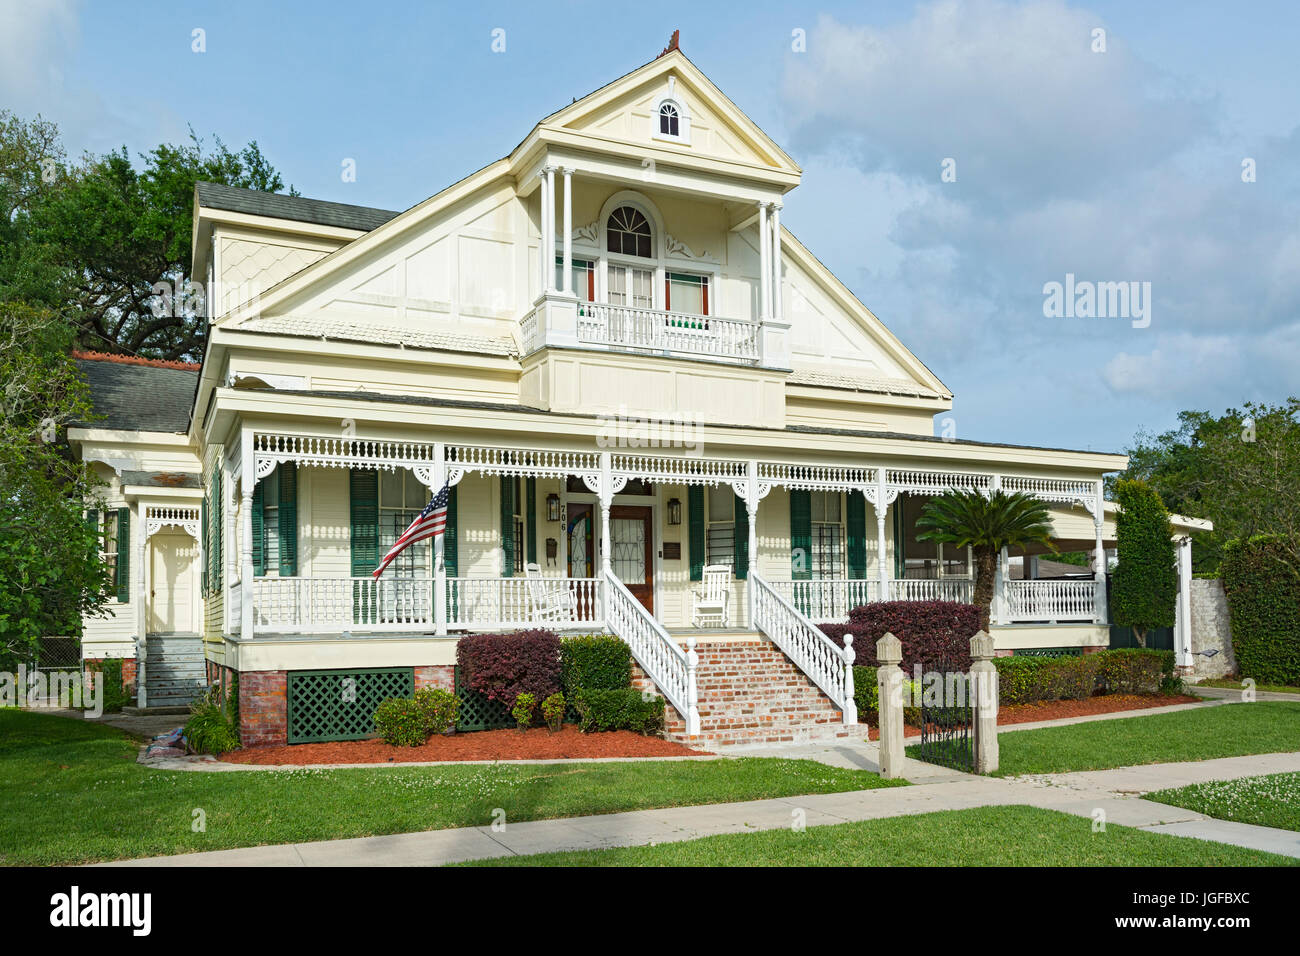 Louisiana, St. Mary Parish, Morgan City, Historic District, 'Adele' 706 First St., private residence, built - Stock Image